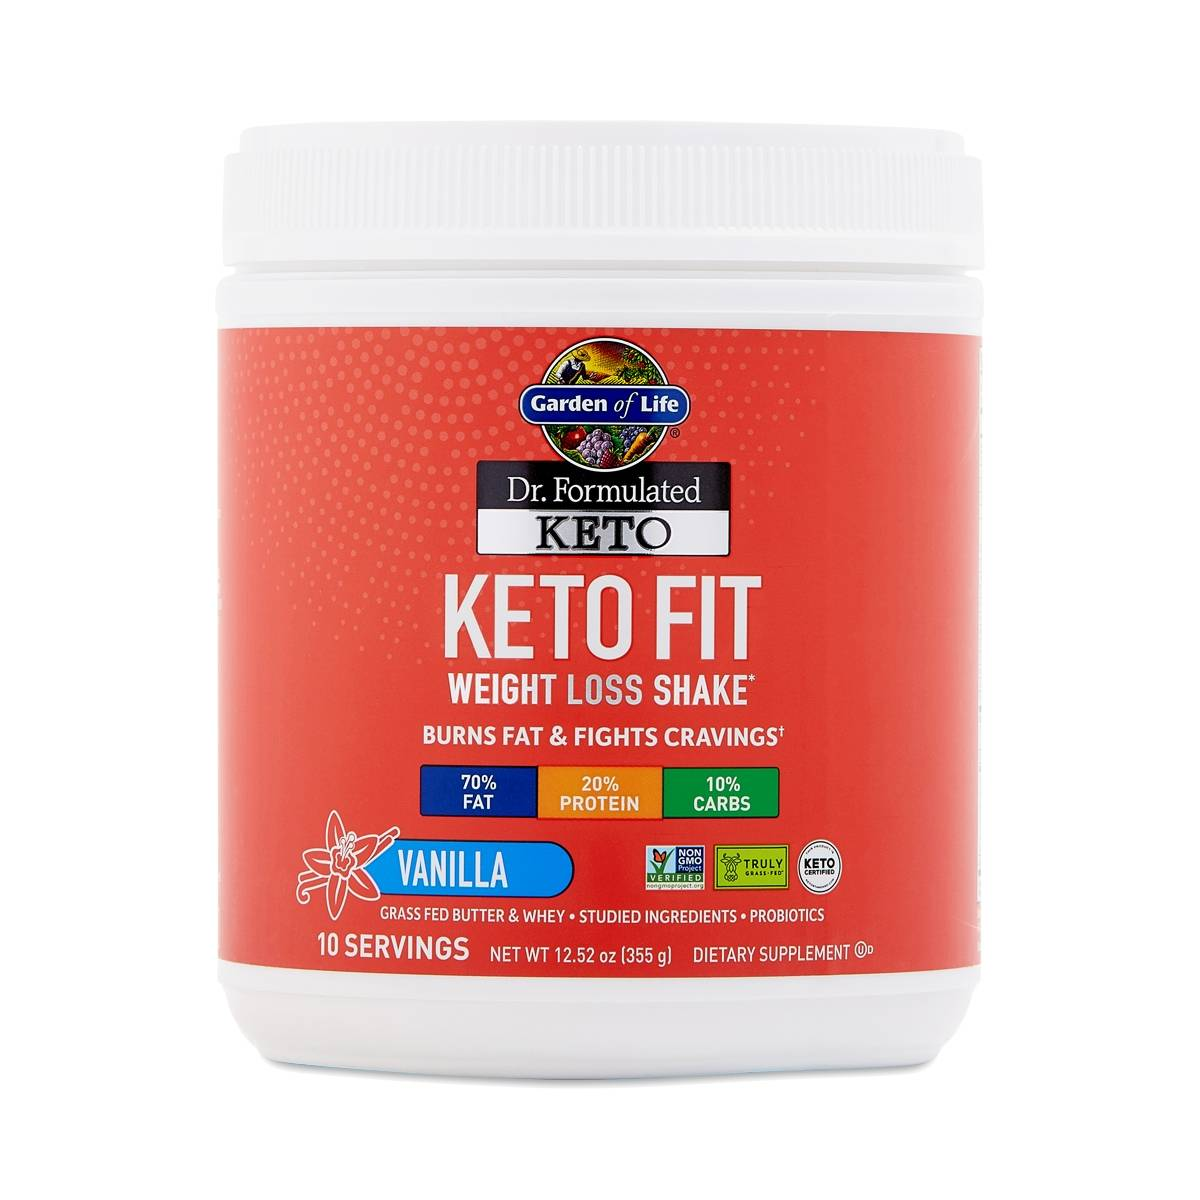 Garden of Life Dr. Formulated Keto Fit, Vanilla - Thrive ...